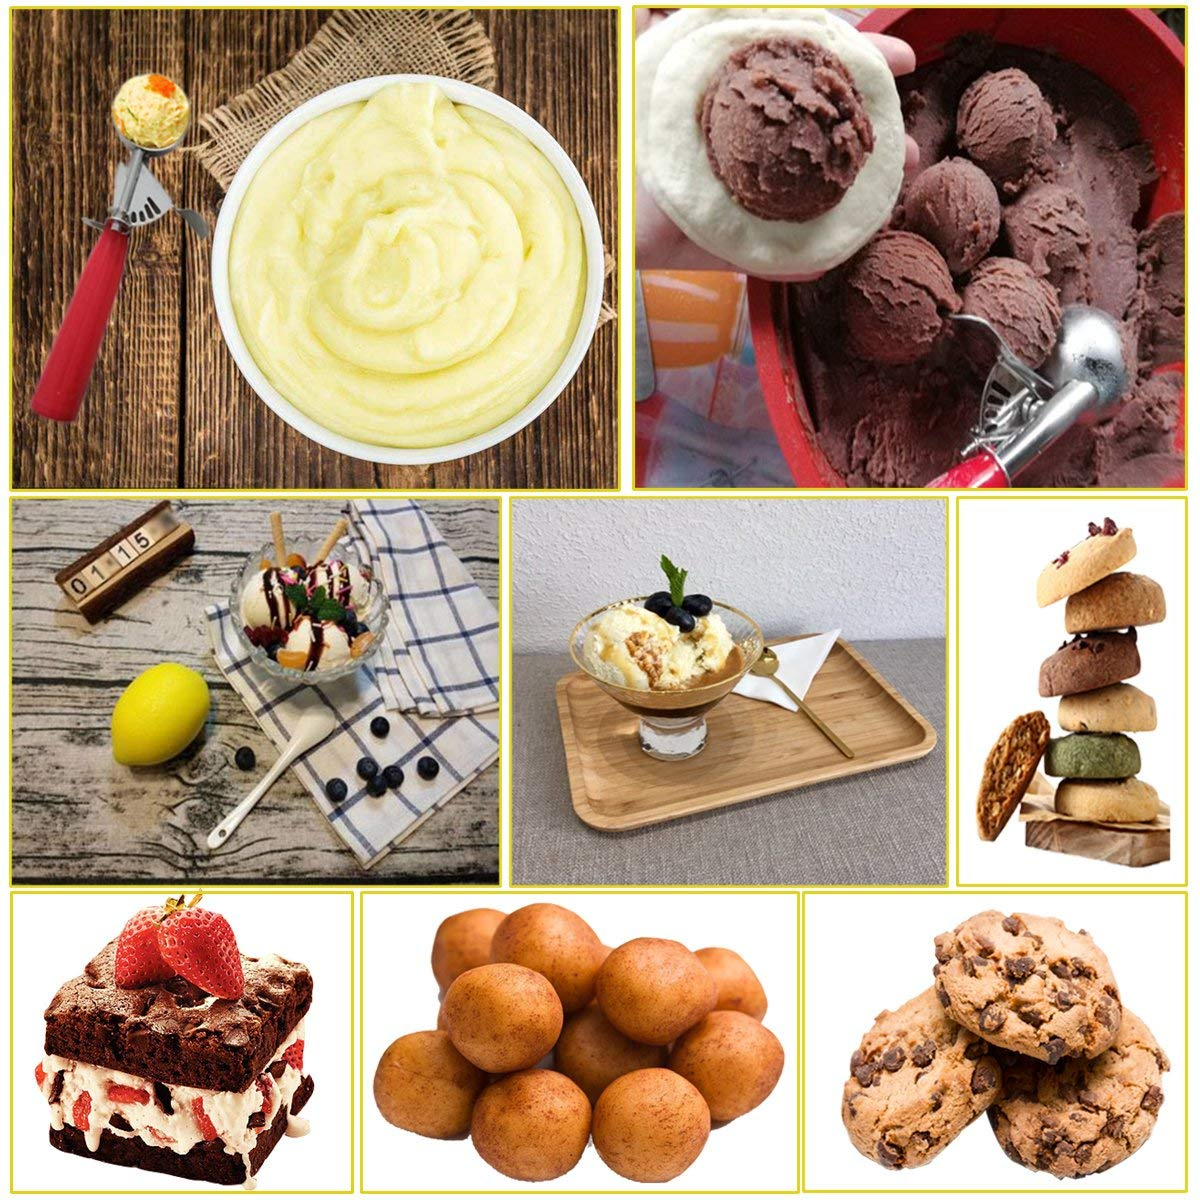 Ice Cream Scoop with Trigger Multiple Size Large-Medium-Small Size Professional 18//8 Stainless Steel Cupcake Scoop Cookie Scoop Set